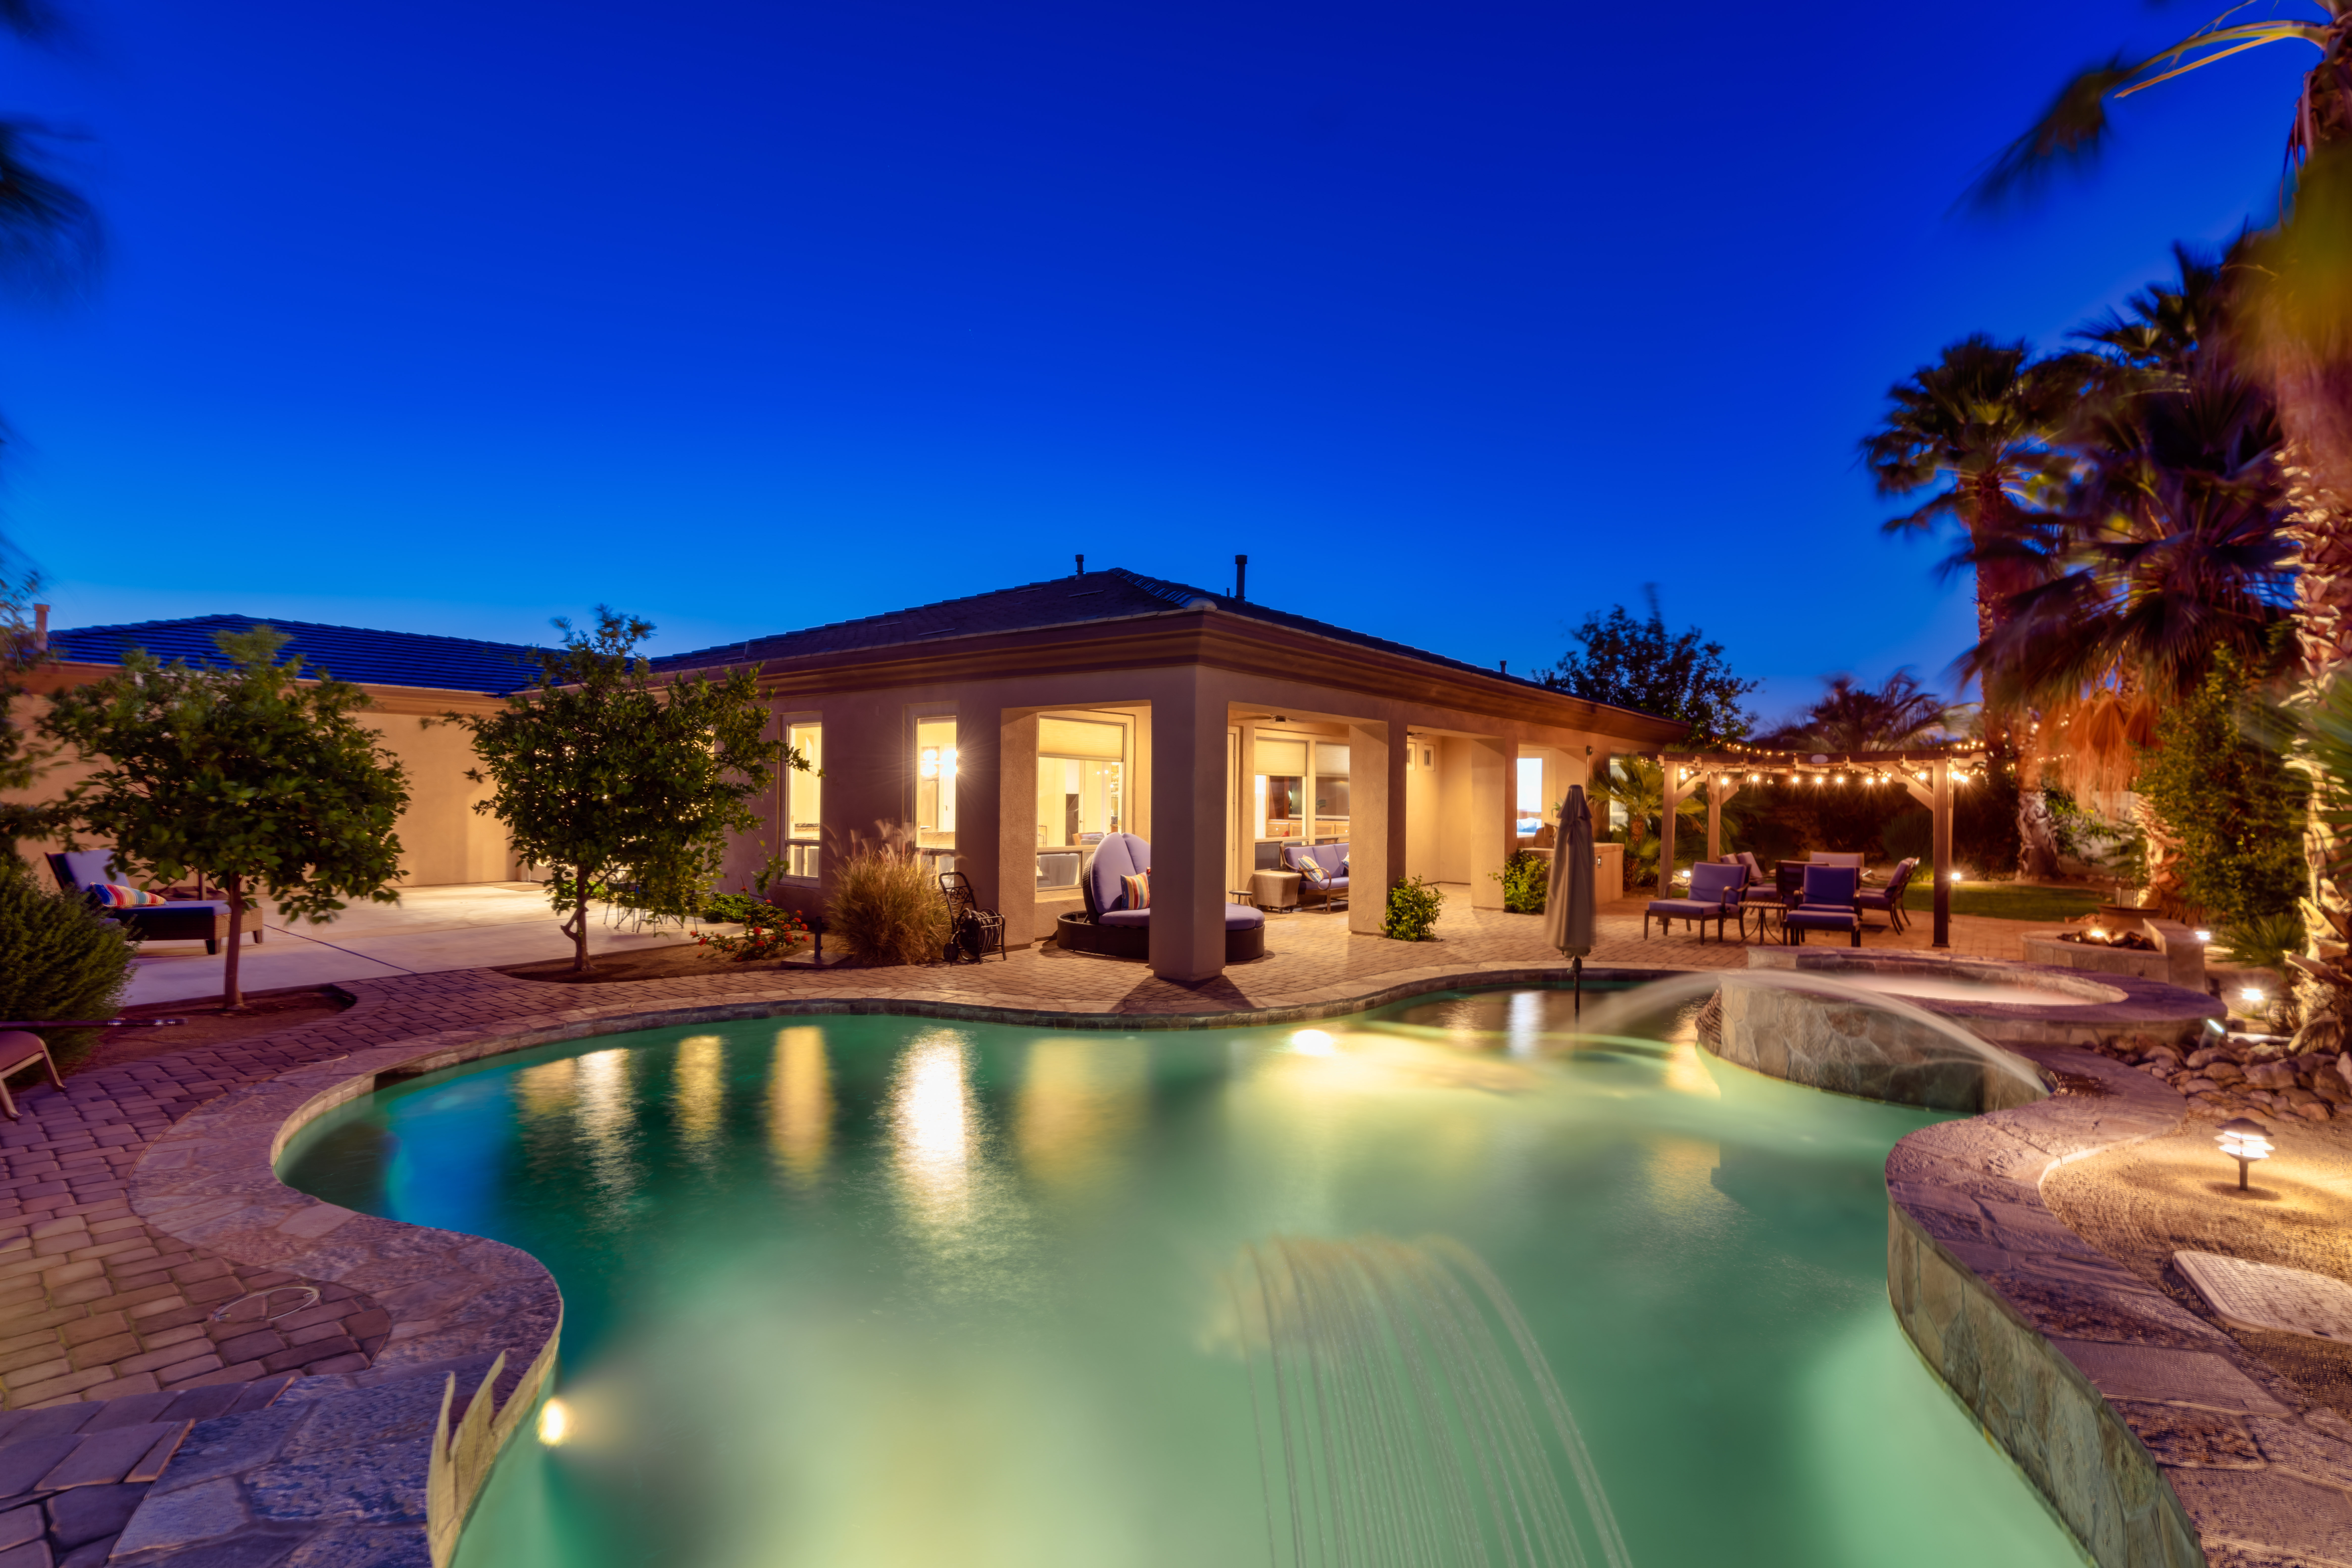 Indio CA Vacation Rental Welcome! This tropical